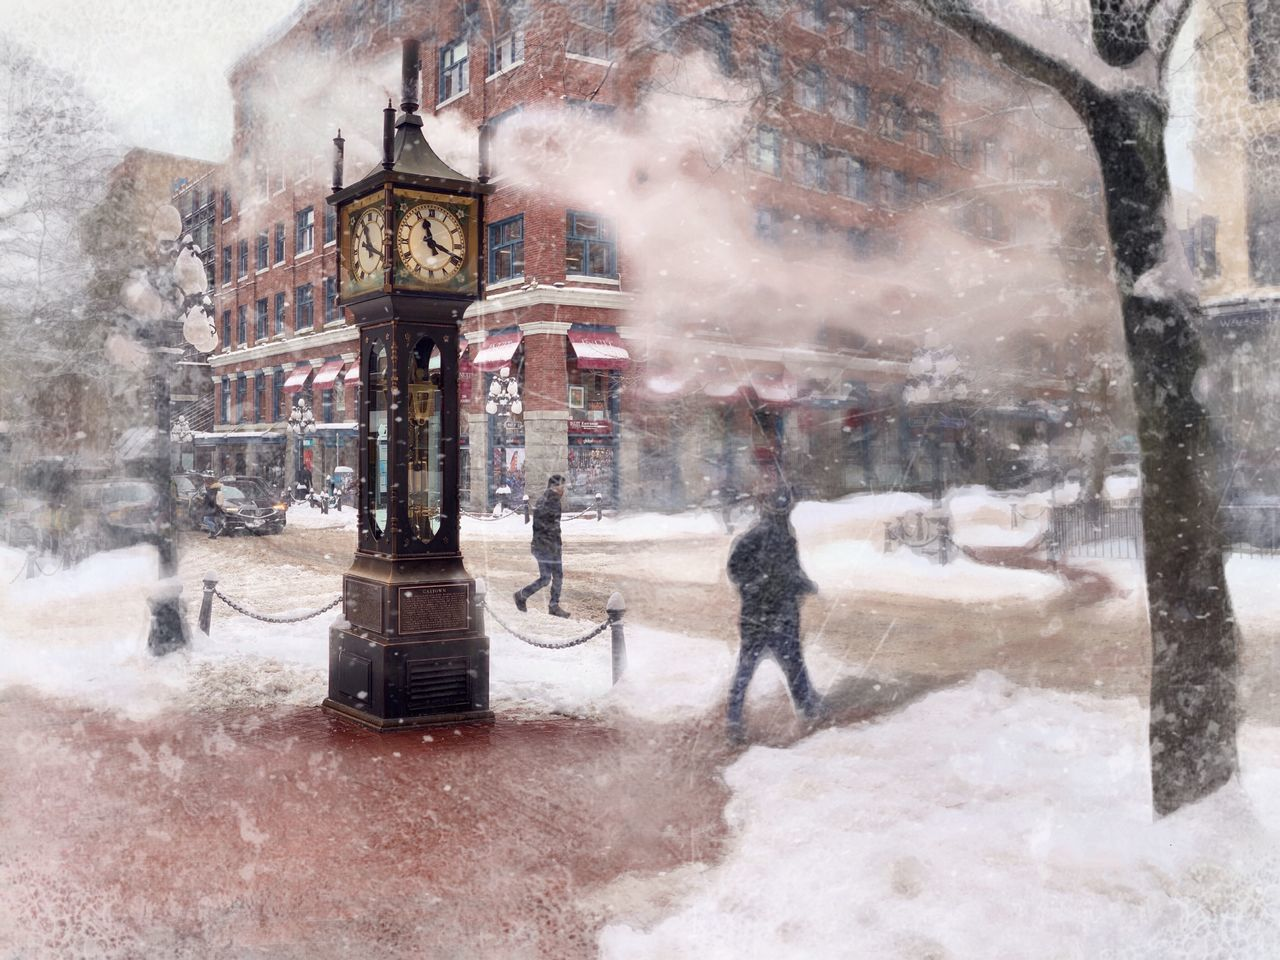 PEOPLE ON SNOW COVERED STREET BY BUILDINGS IN CITY